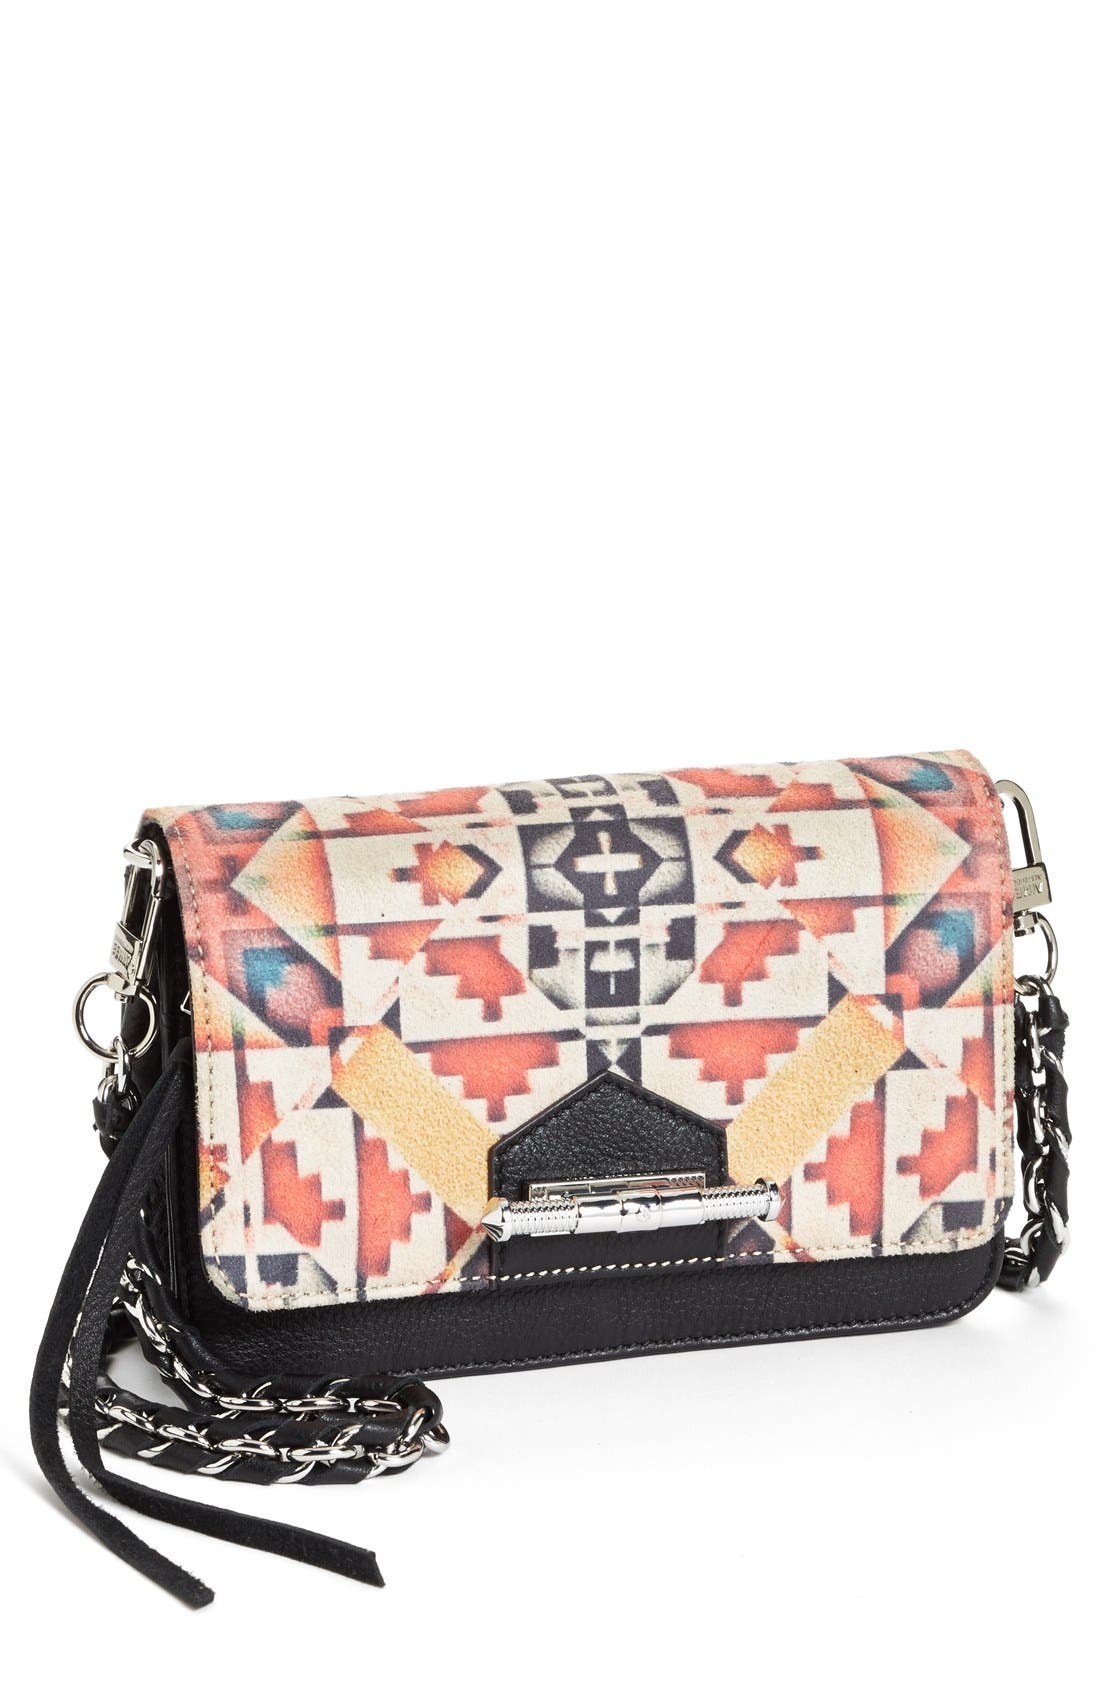 Alternate Image 1 Selected - Aimee Kestenberg Crossbody Bag